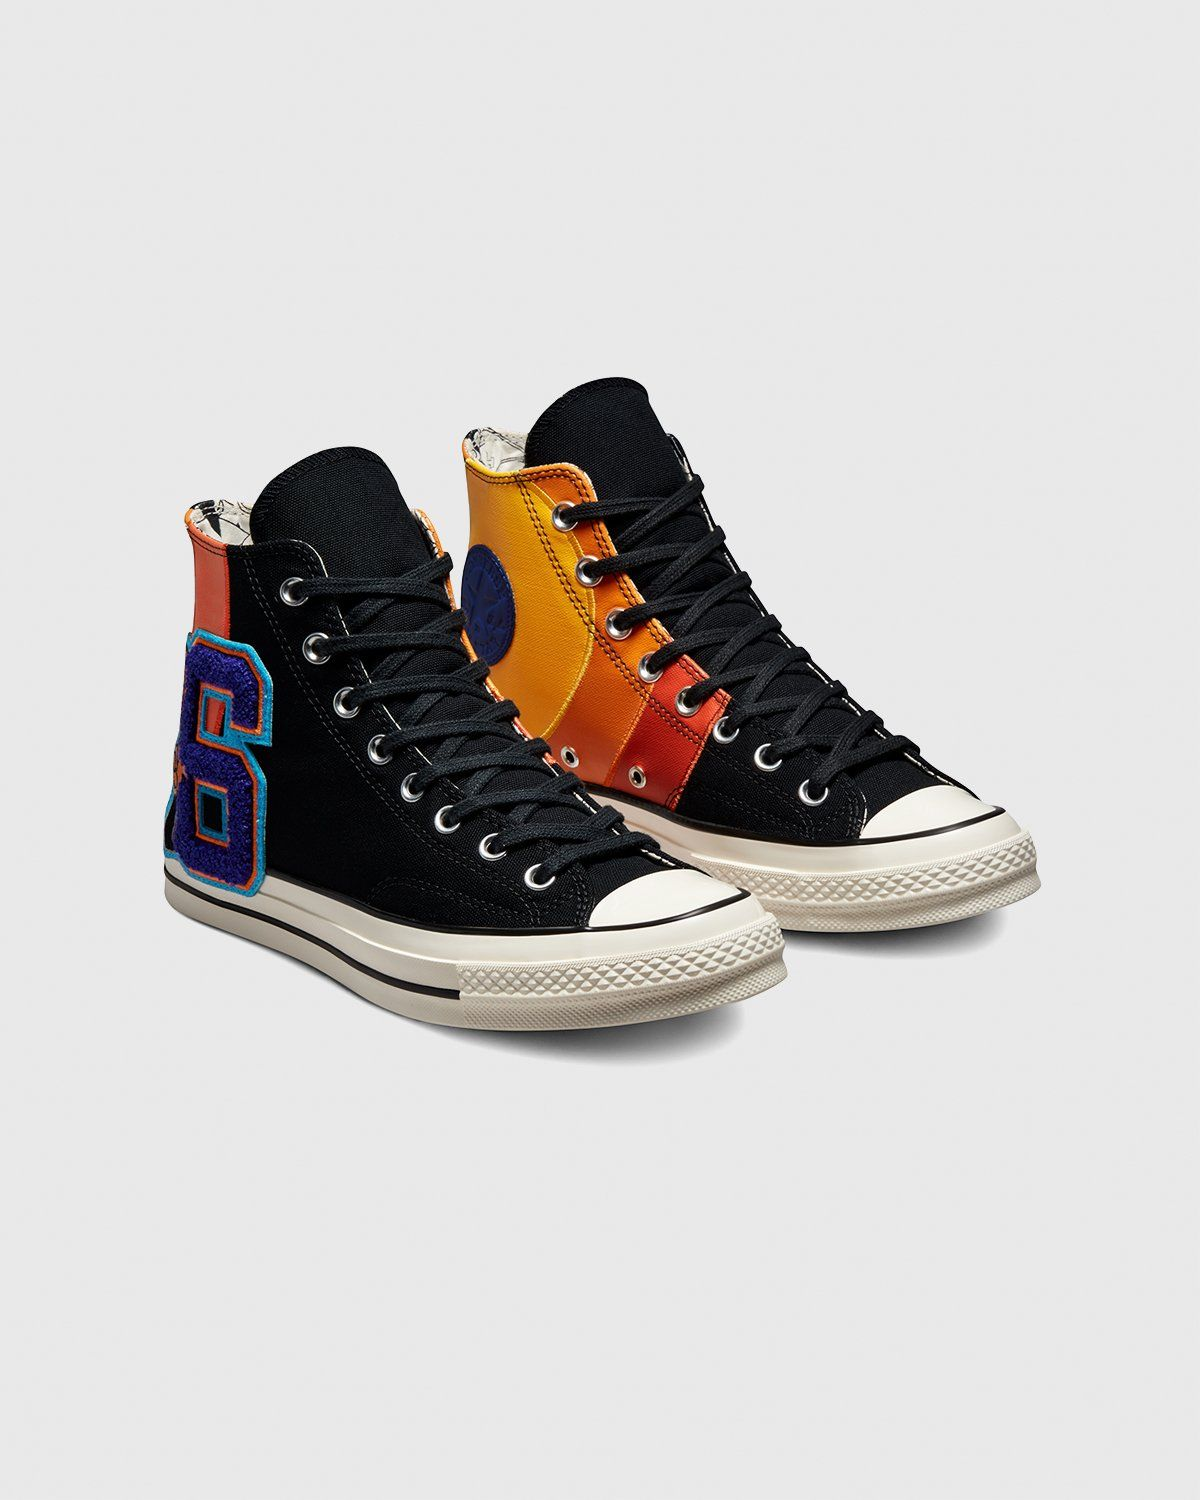 Converse x Space Jam: A New Legacy – Chuck Taylor 70 Multi - Image 2